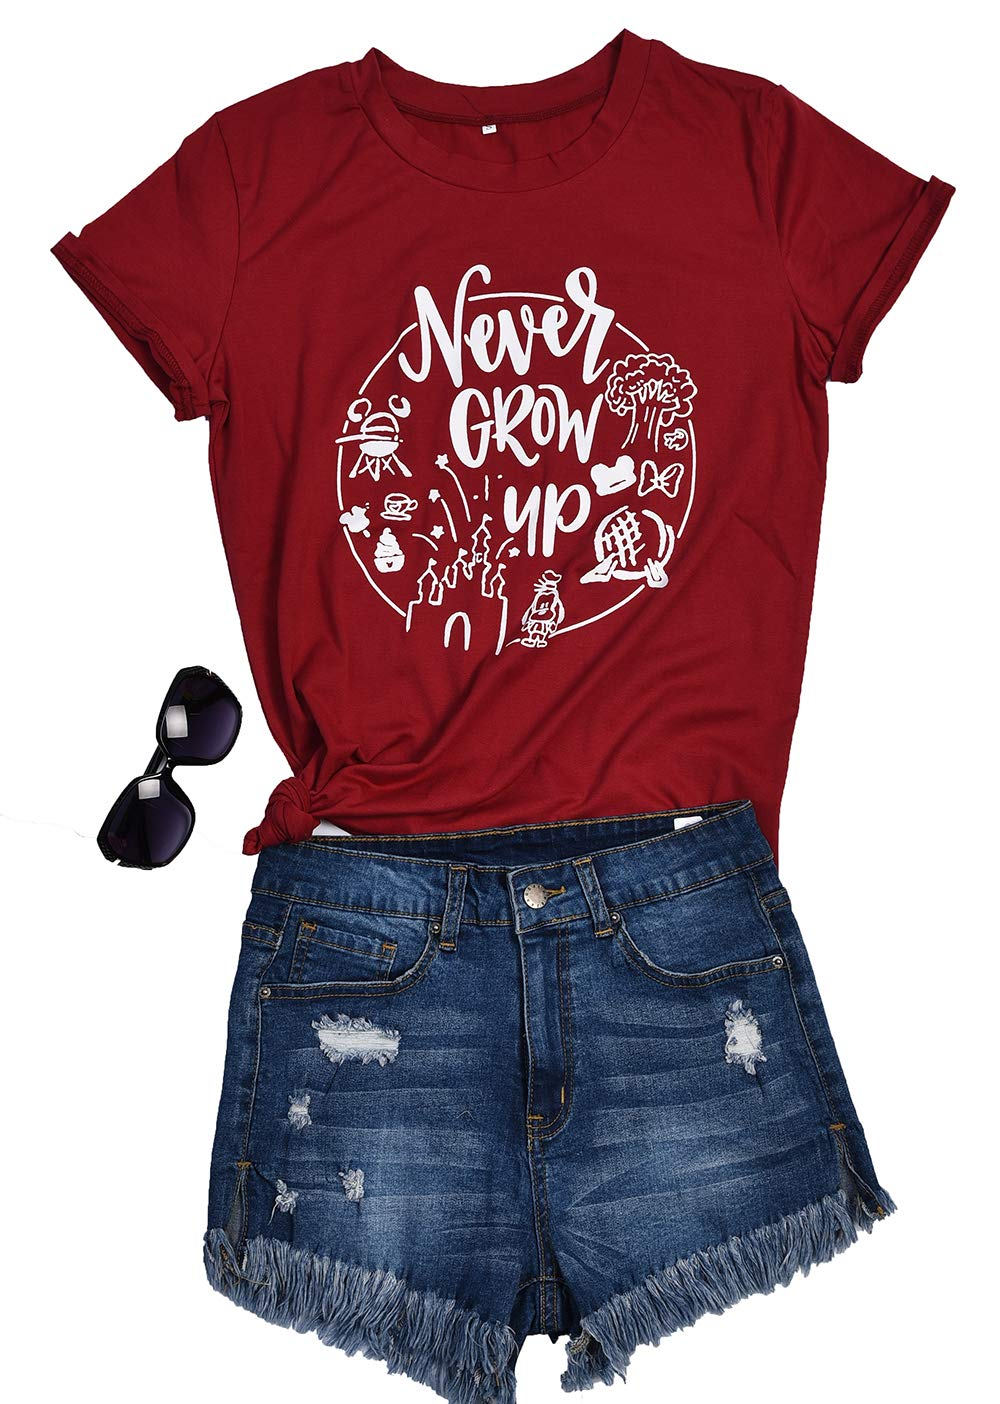 Ido4U Funny Graphic Tees Letter Printed T-Shirts Summer Round Neck Short Sleeve Tops (Never Grow Up,2XL)